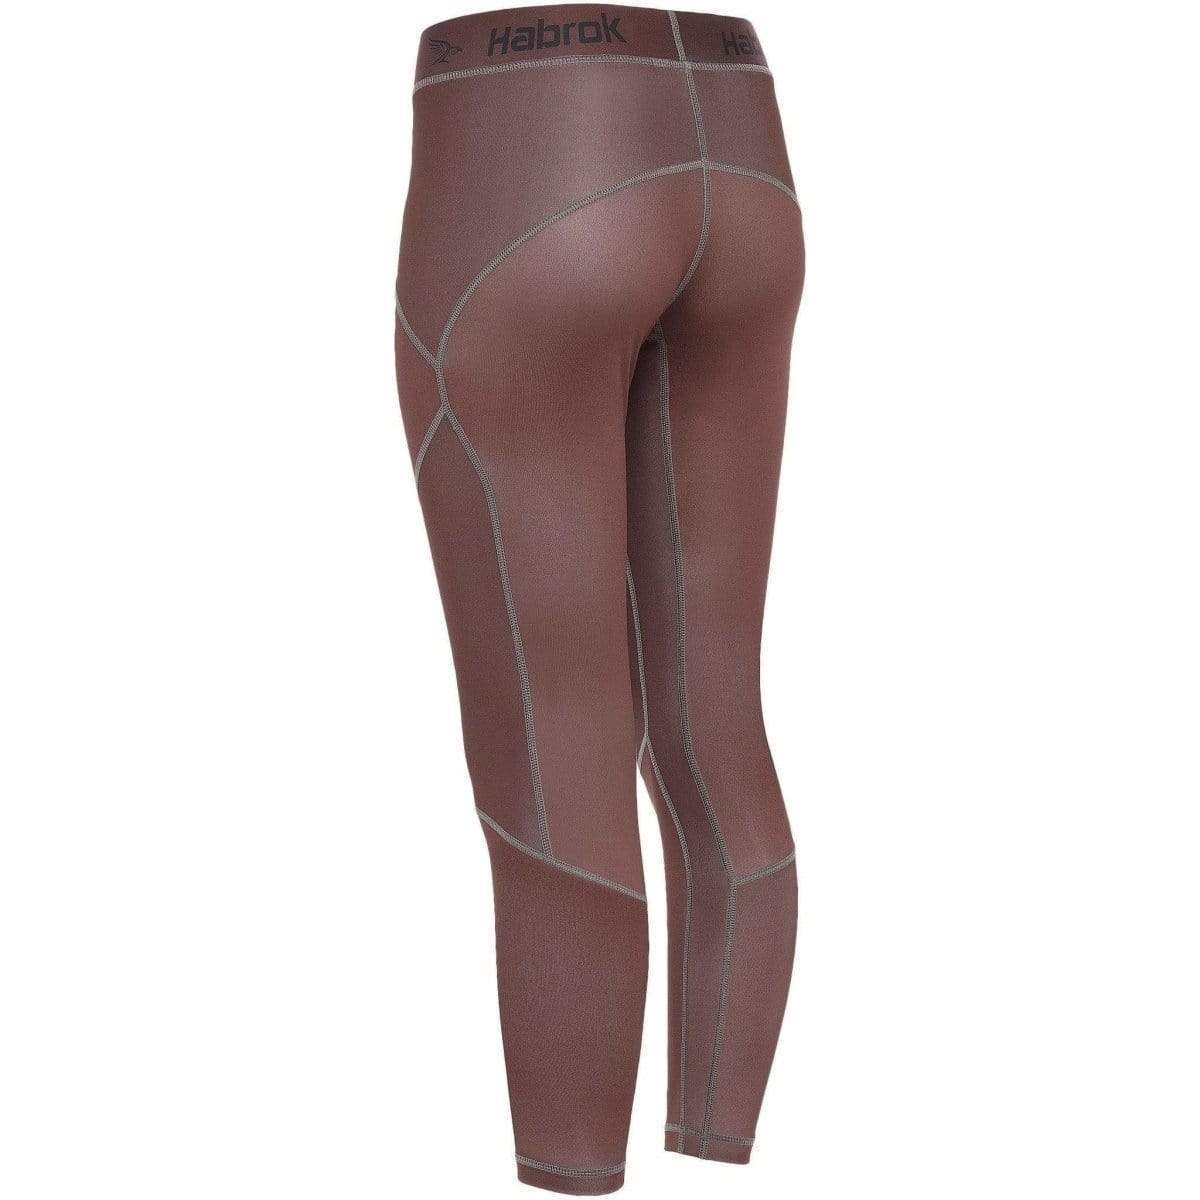 Habrok Spats Pugnator | Compression Pants | Women | Brown